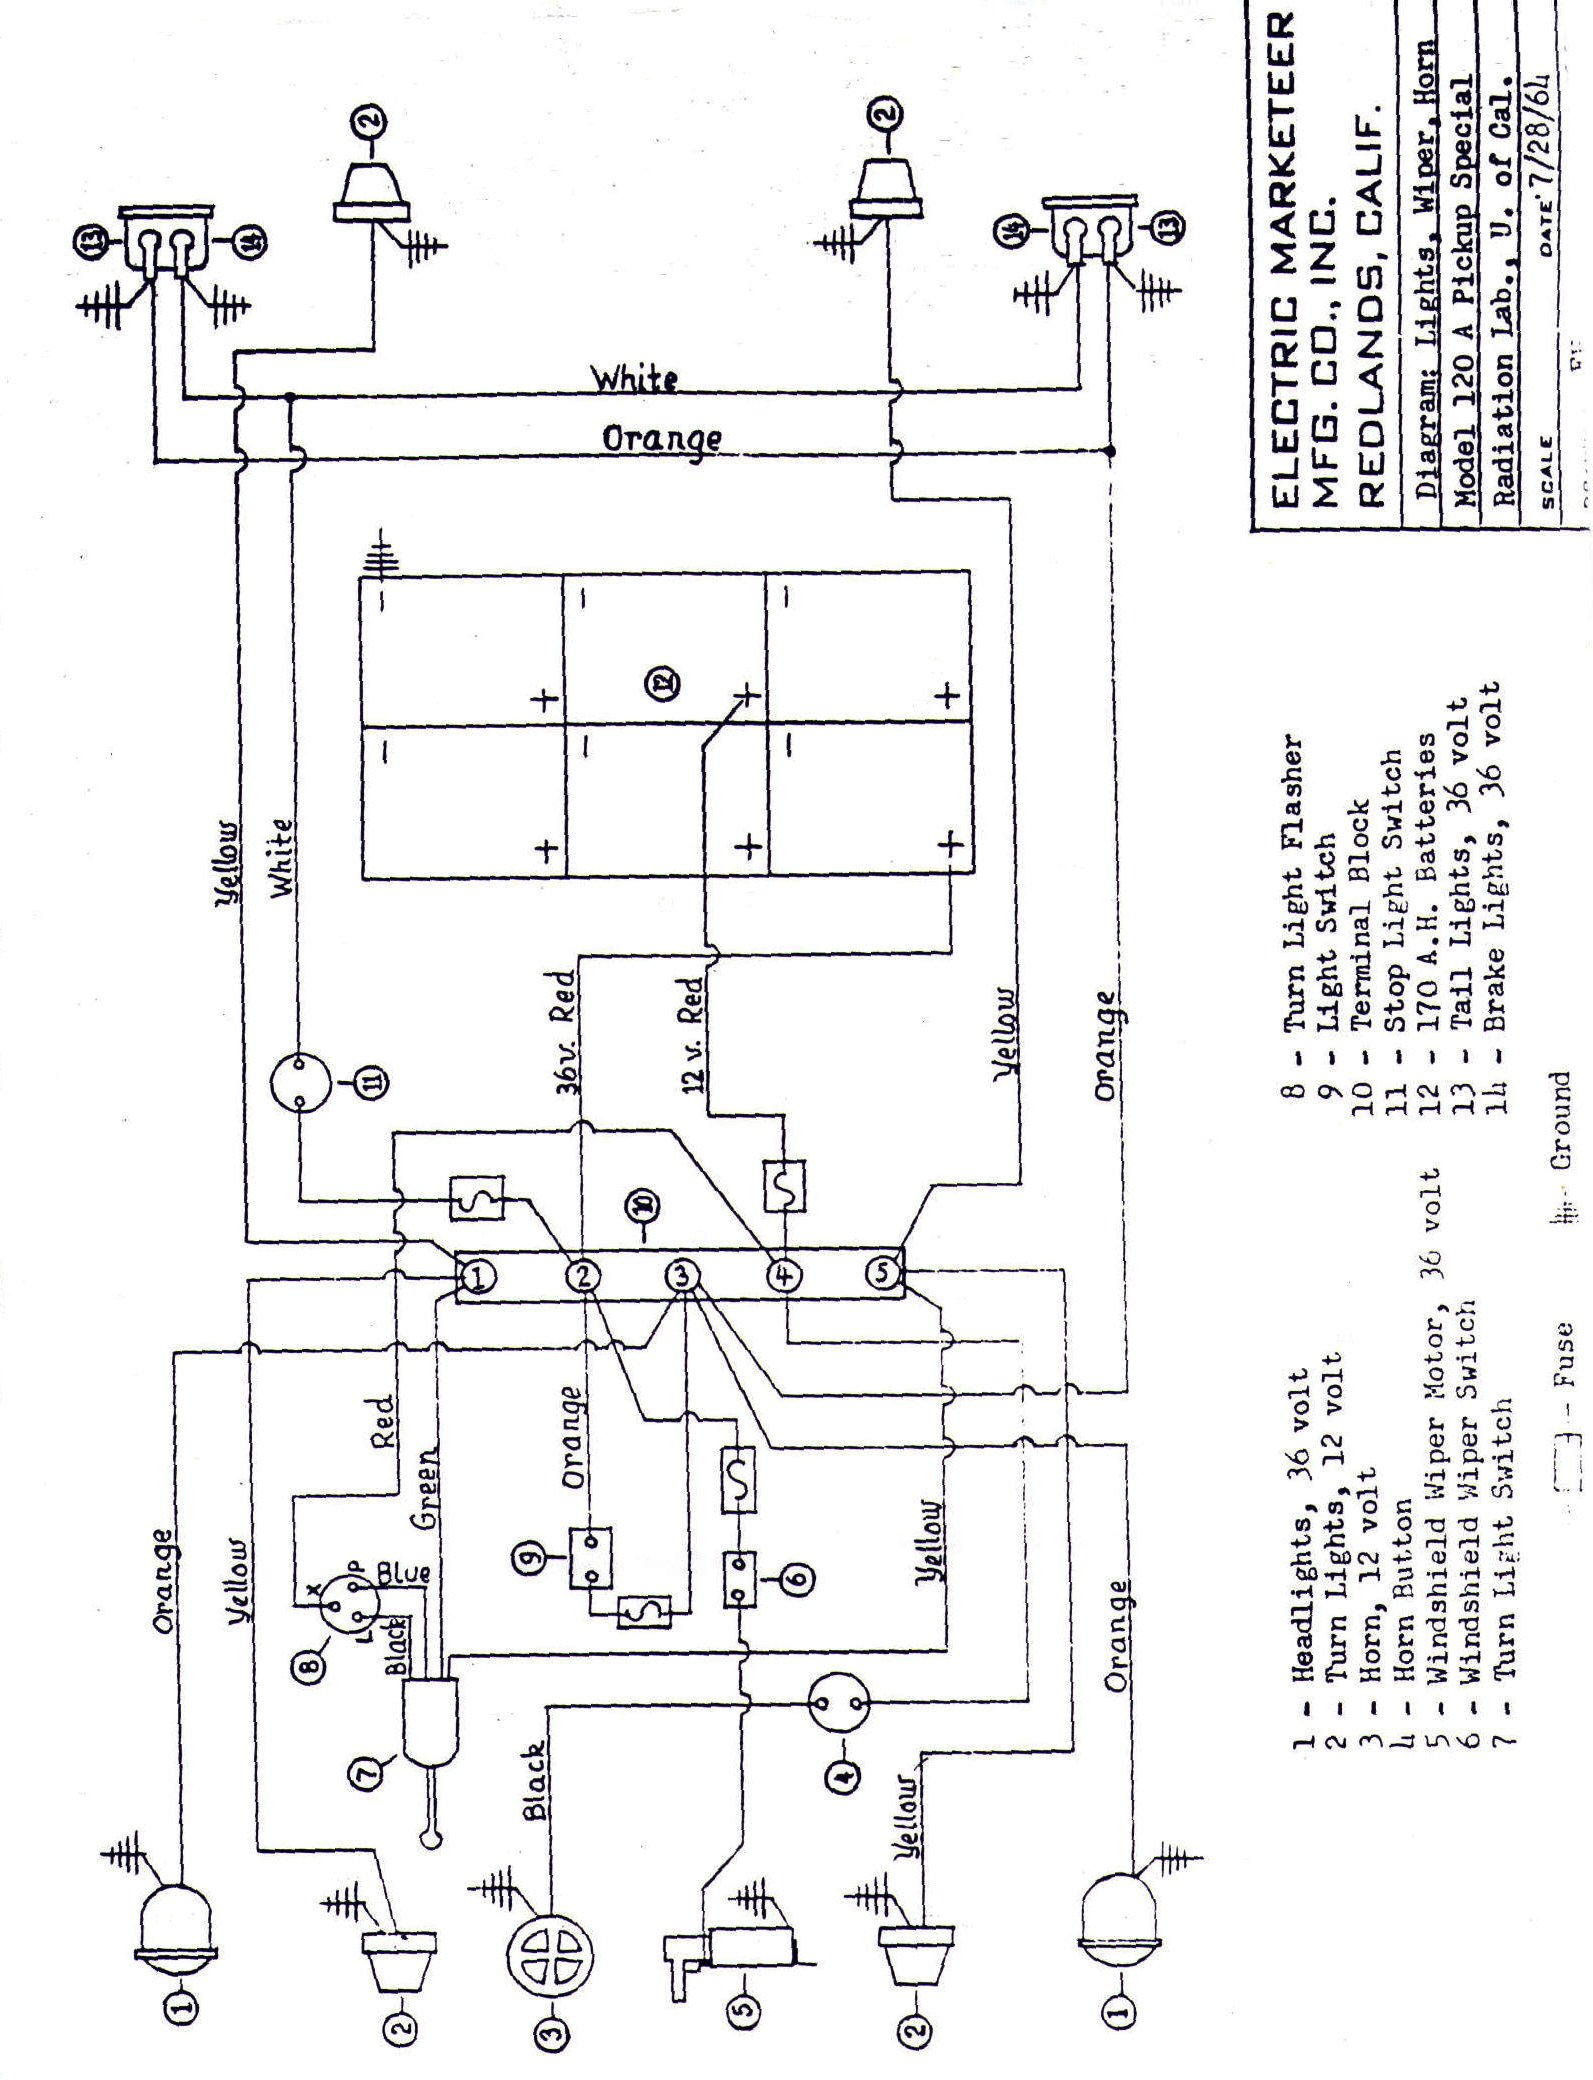 westinghouse golf cart wiring diagram additionally club car wiring